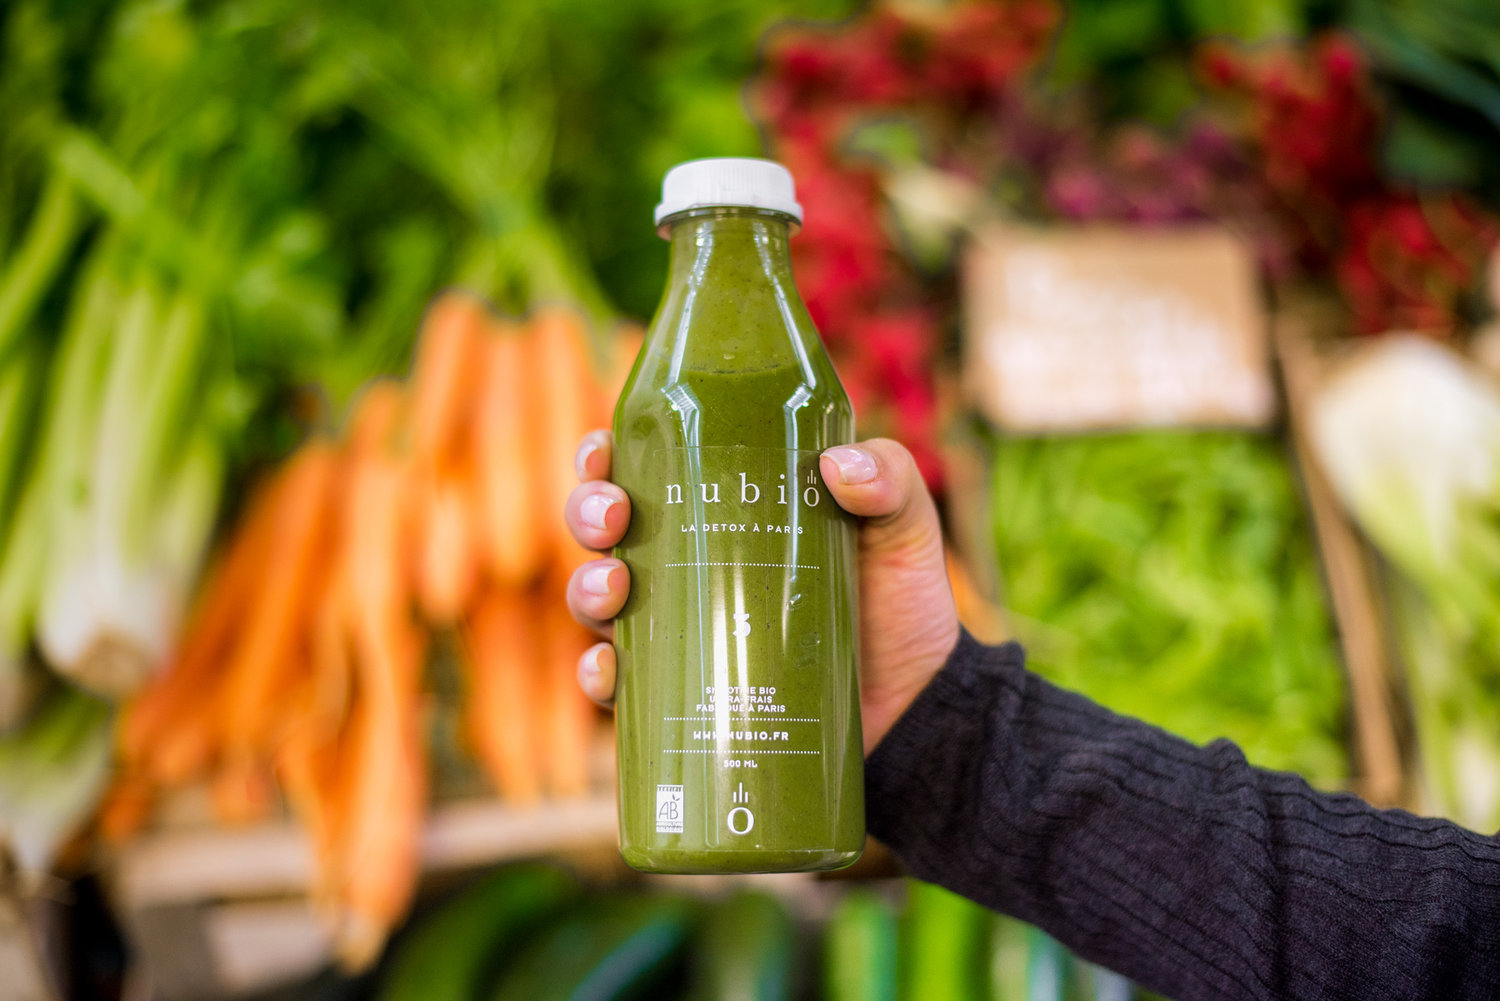 Unique Nubio Juices, Paris: A Challenging, But Rewarding Juice Cleanse  GH11